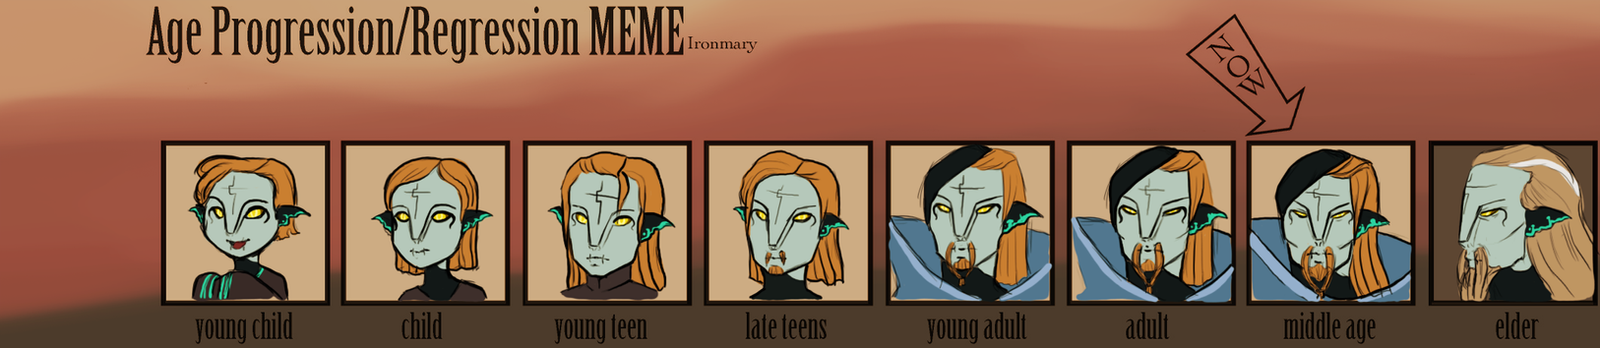 Age Progression Meme - Faheem by Anilede